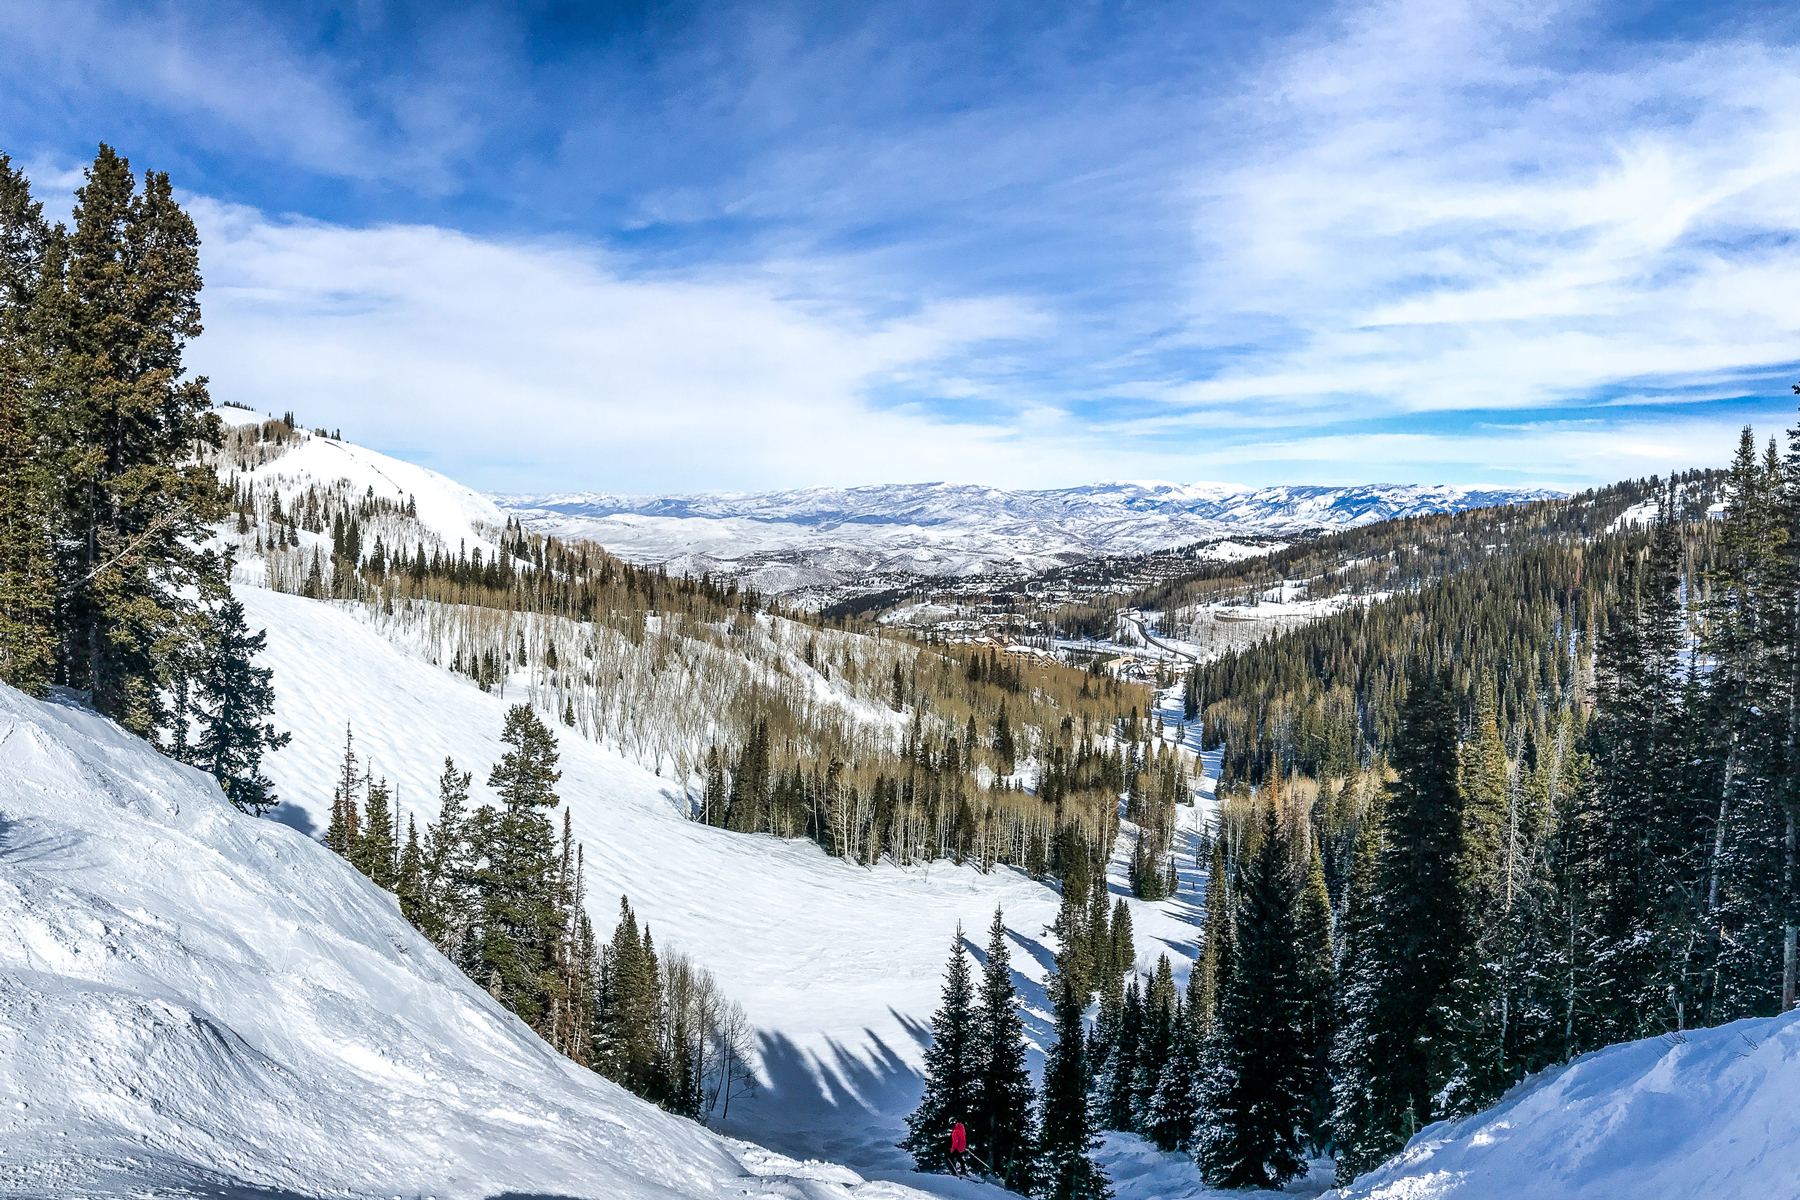 Winter mountain landscape in Deer Valley ski resort.